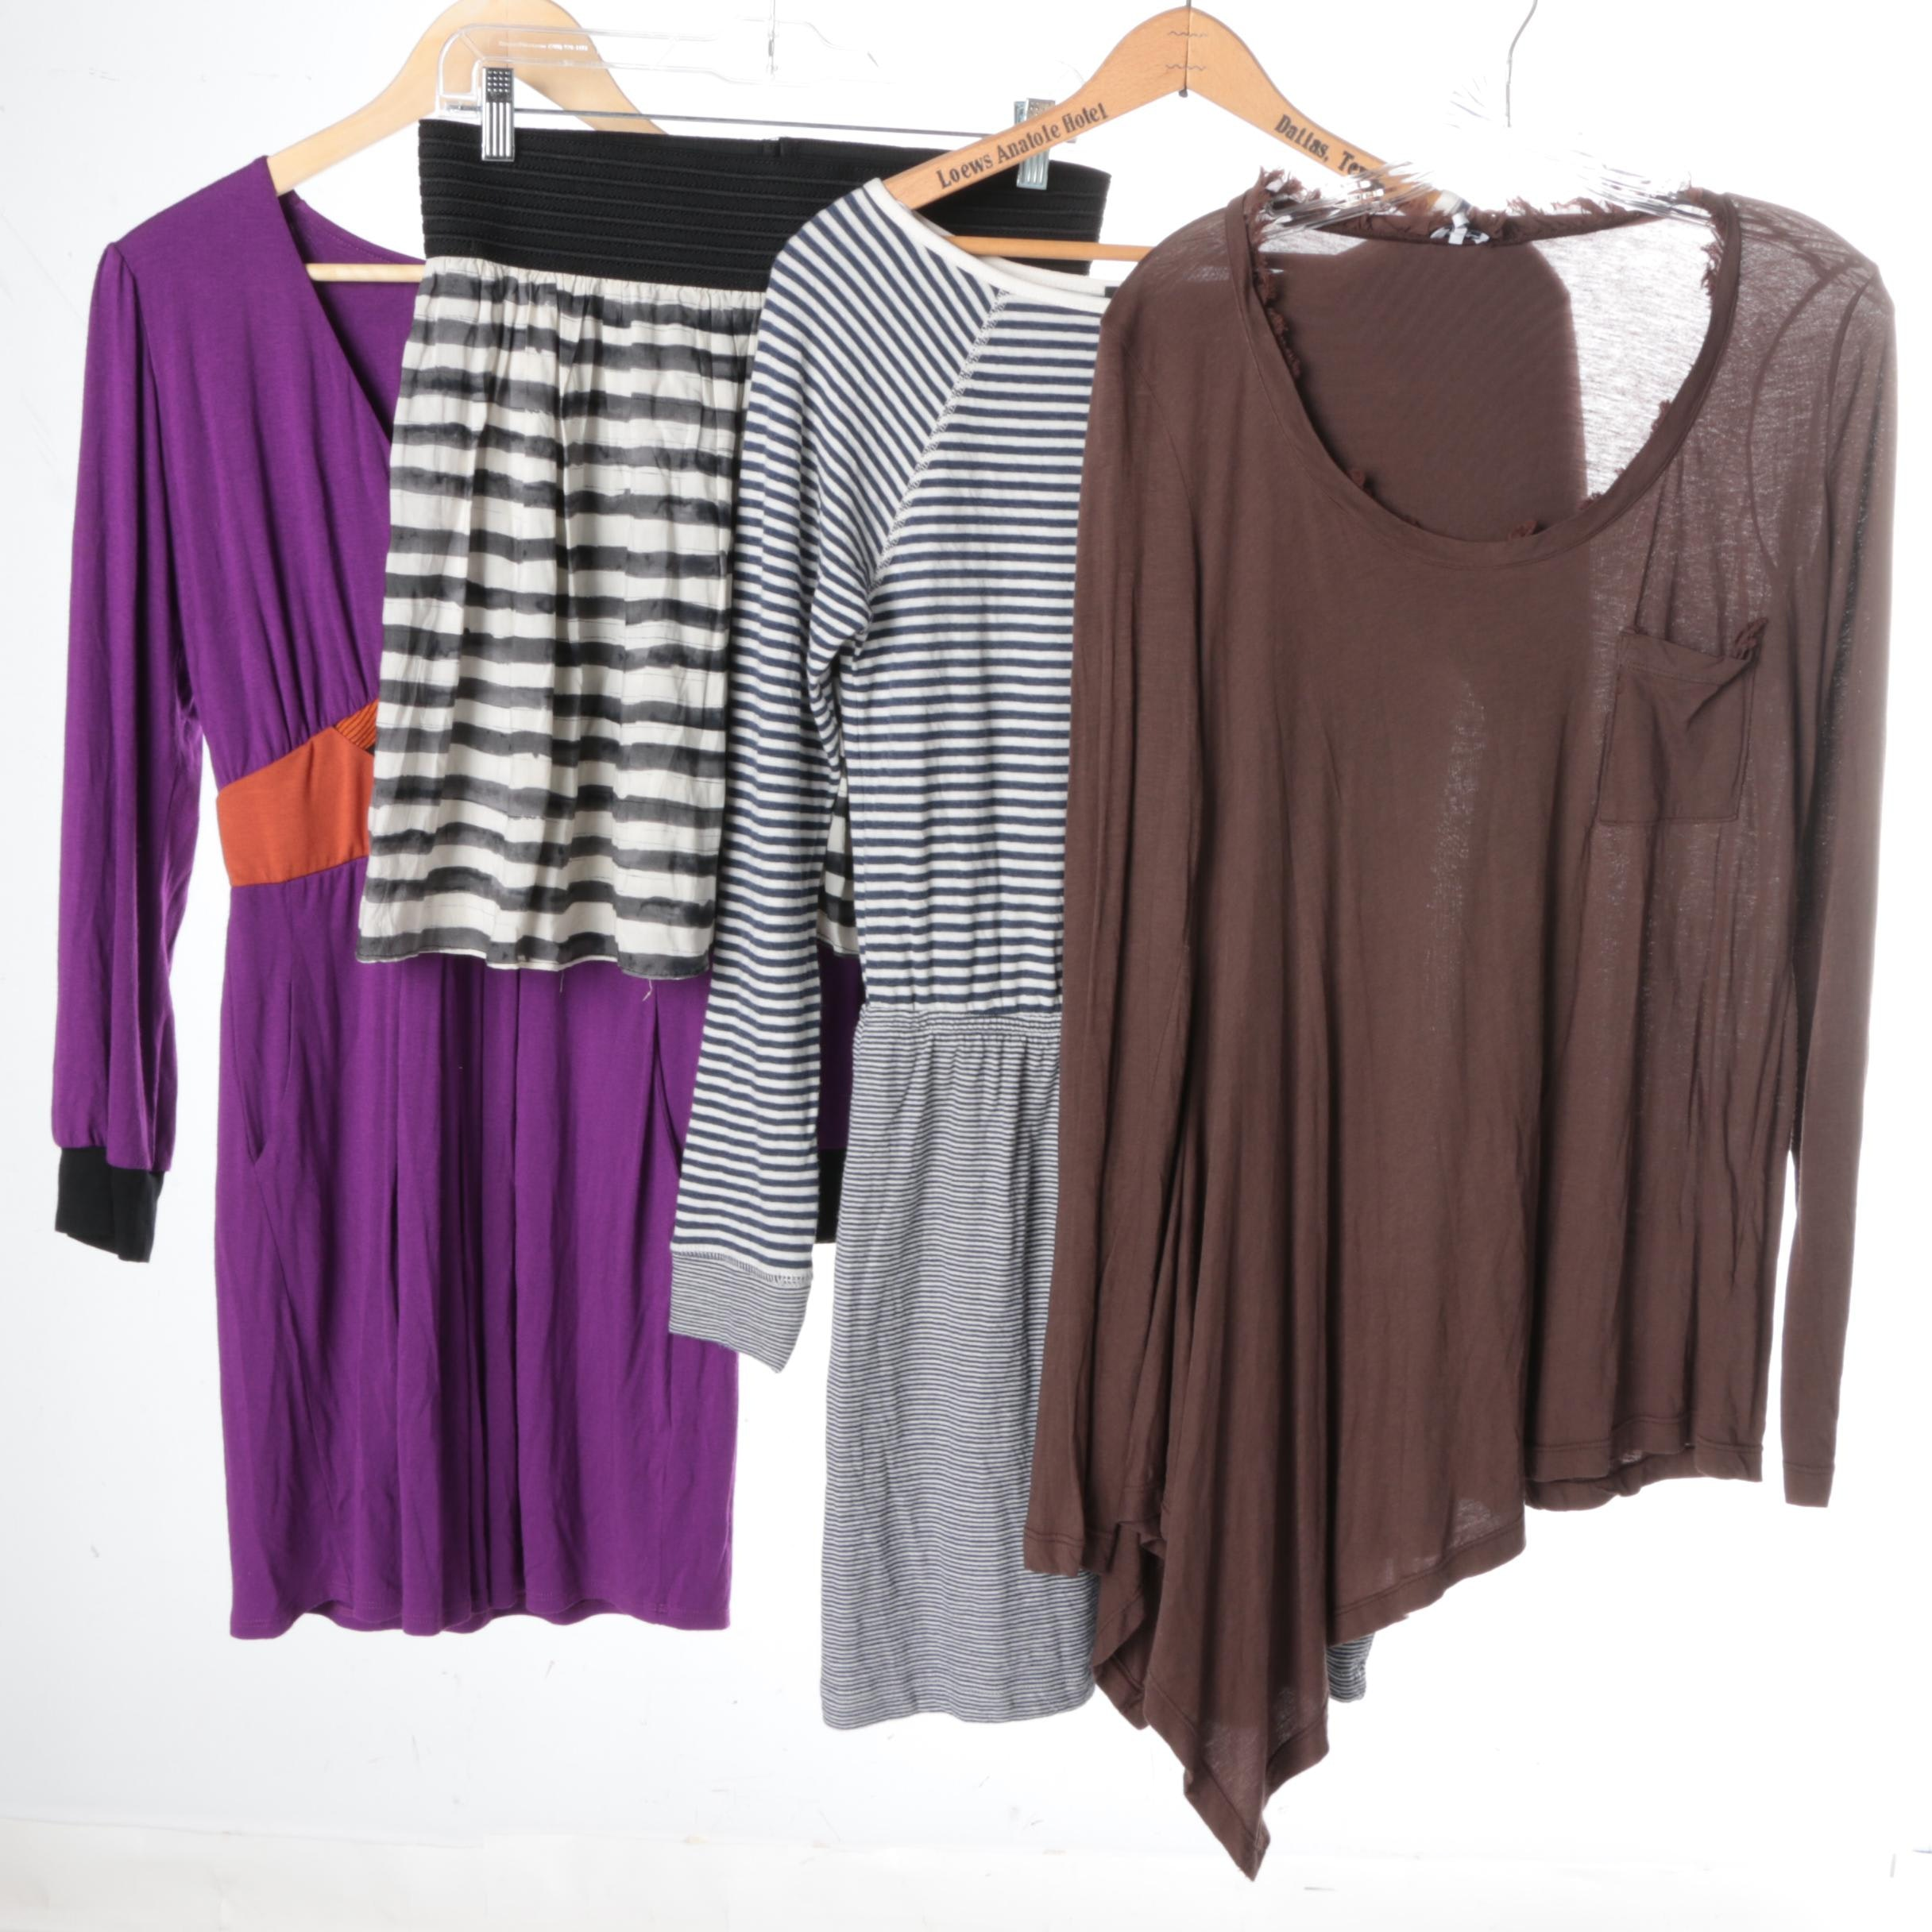 Women's Knitwear Clothing Assortment